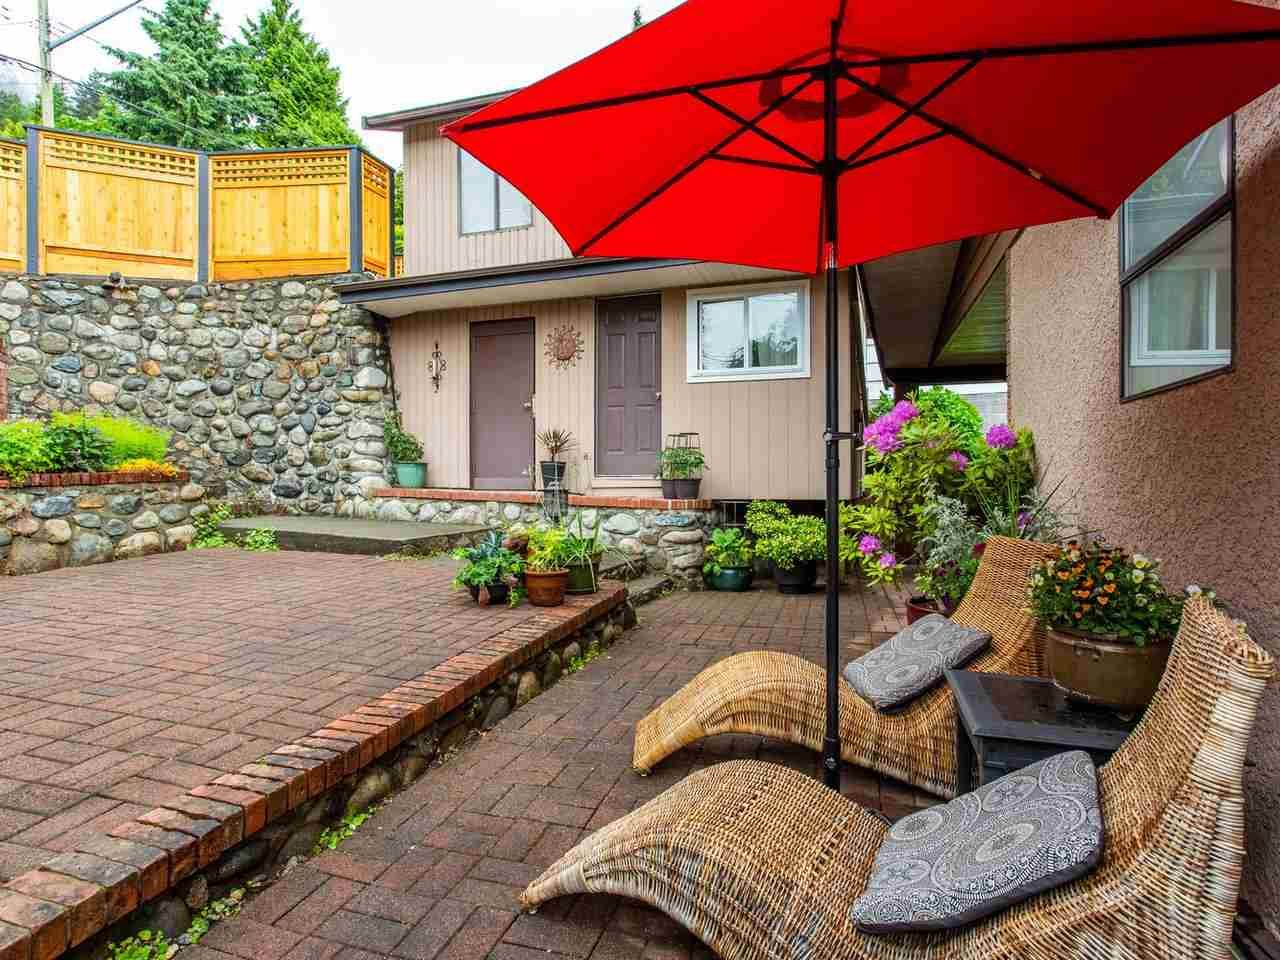 Main Photo: 2248 CALEDONIA AVENUE in North Vancouver: Deep Cove House for sale : MLS®# R2459764